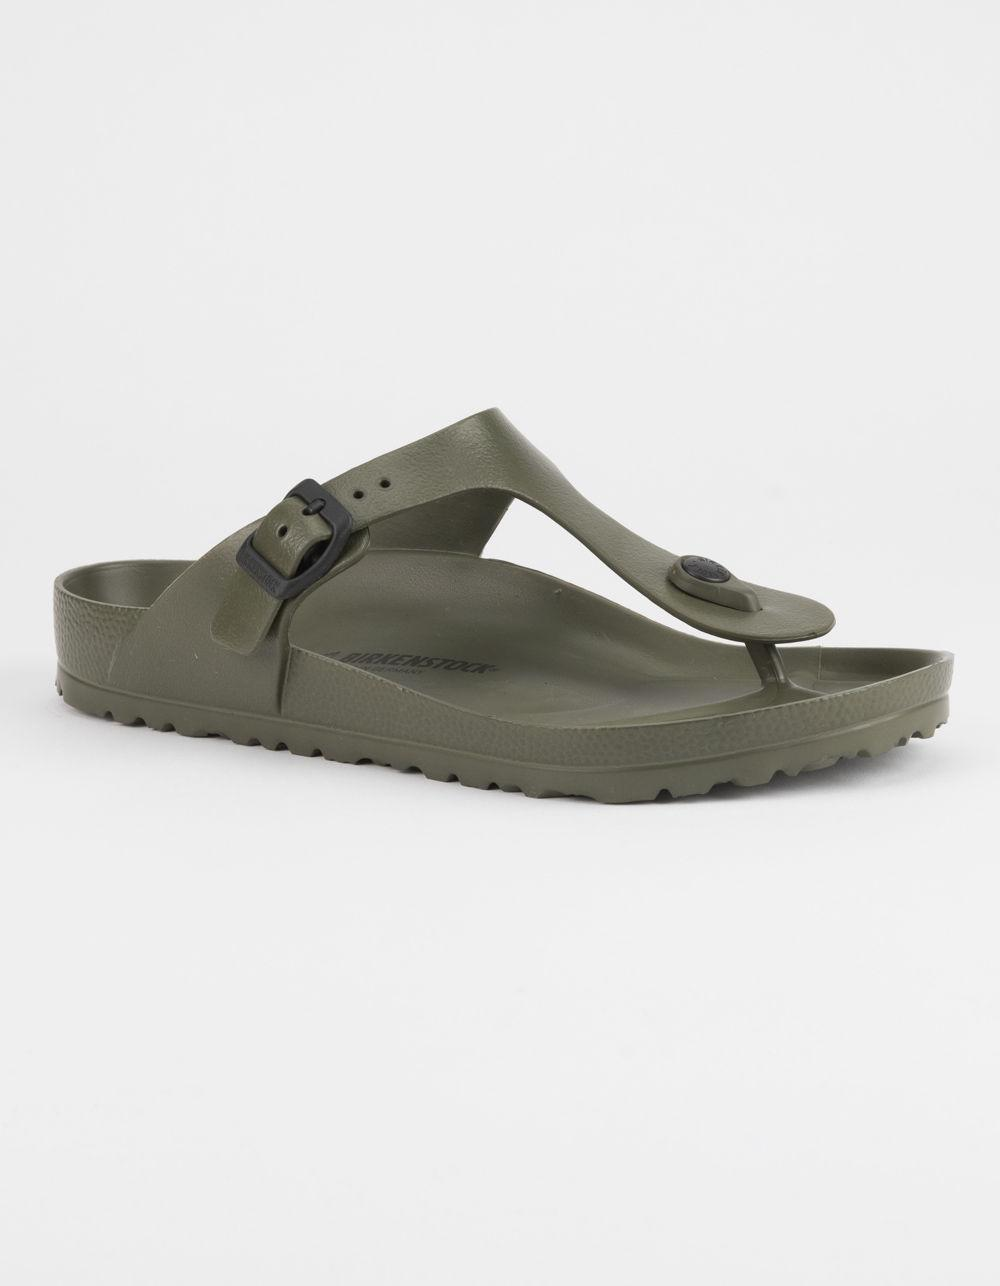 356774a7fc2f Gallery. Previously sold at  Tillys · Women s Birkenstock Gizeh ...